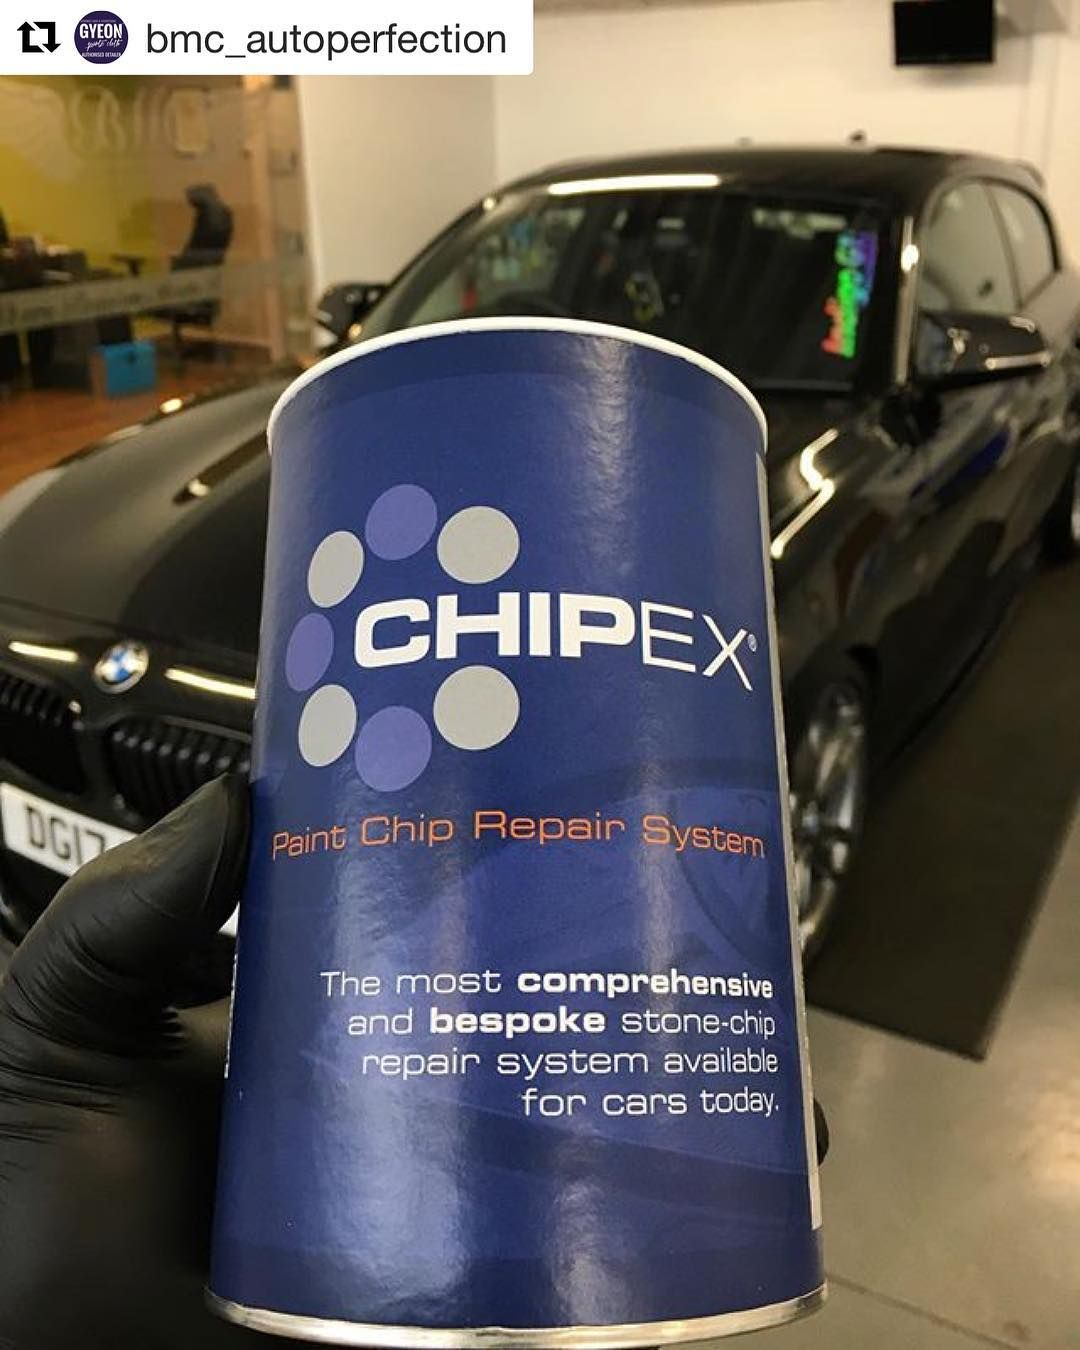 Have you got before and after photos of you using a Chipex